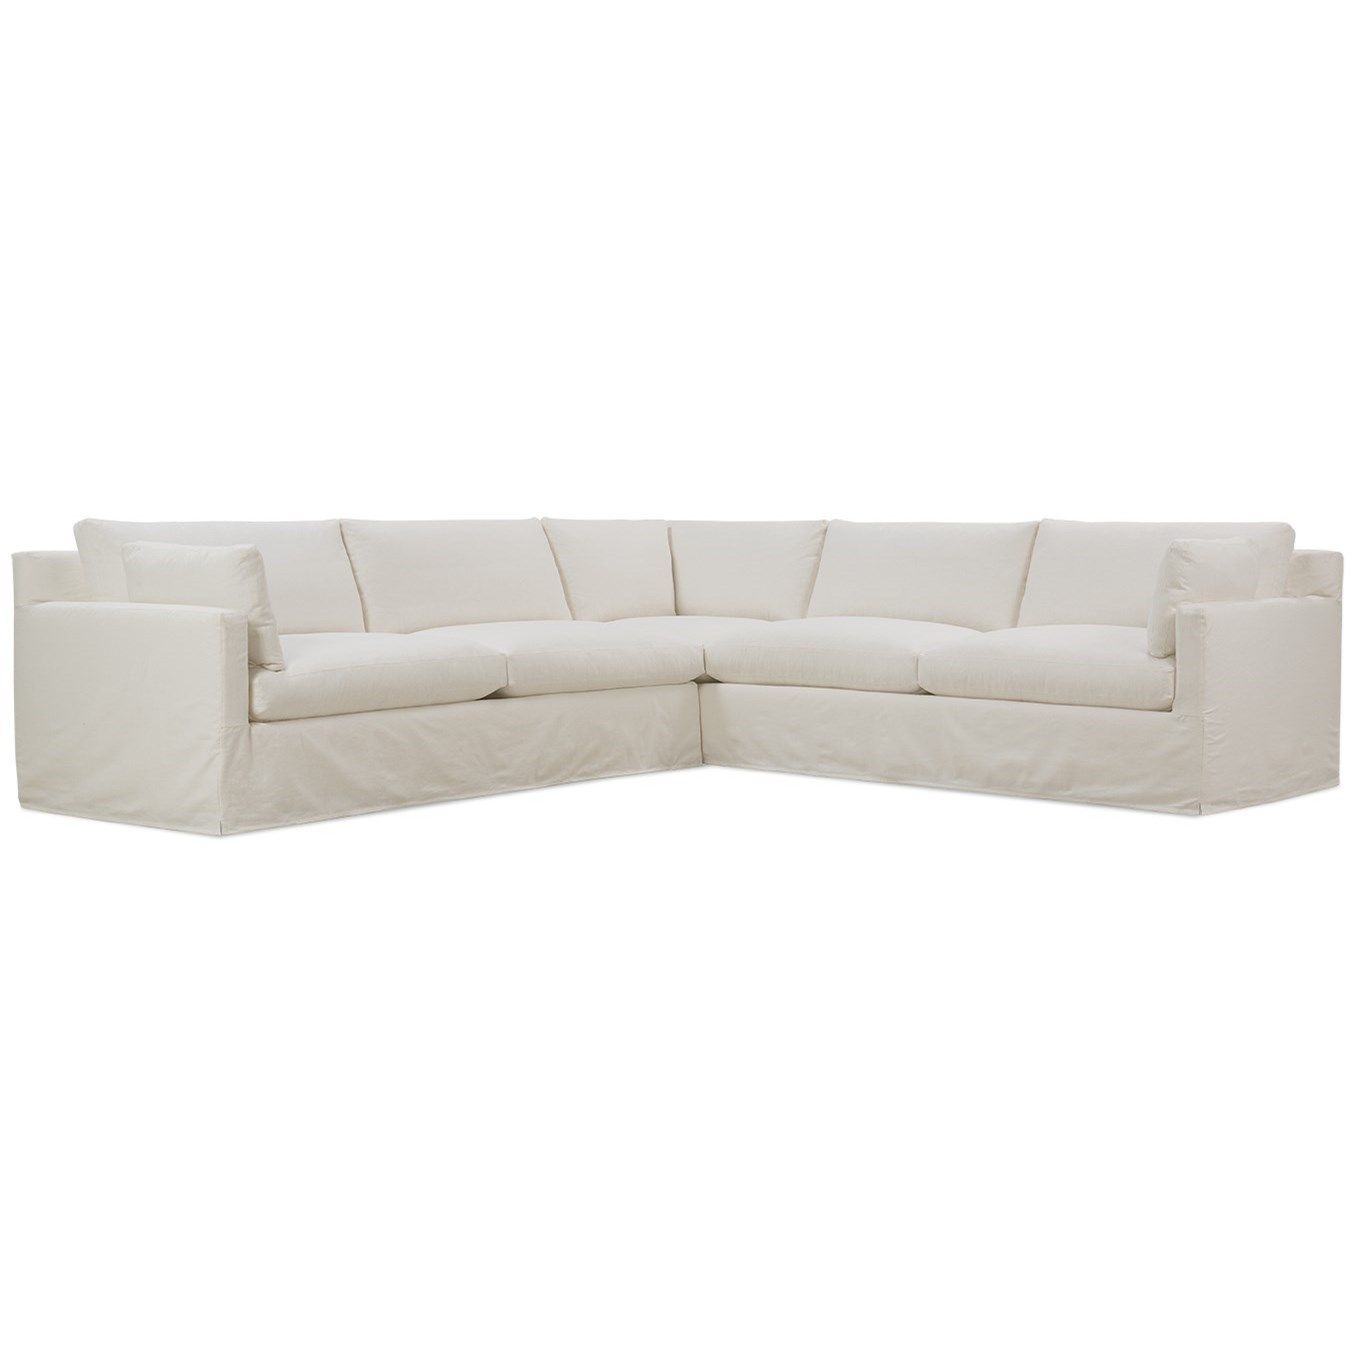 Sylvie Slip Covered Sectional by Robin Bruce at Steger's Furniture